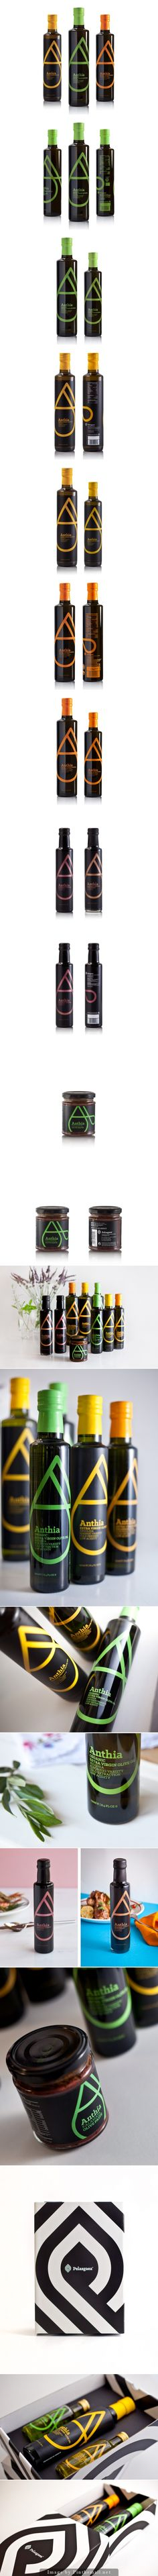 Packaging for Anthia Product Line Work: Comeback Studio